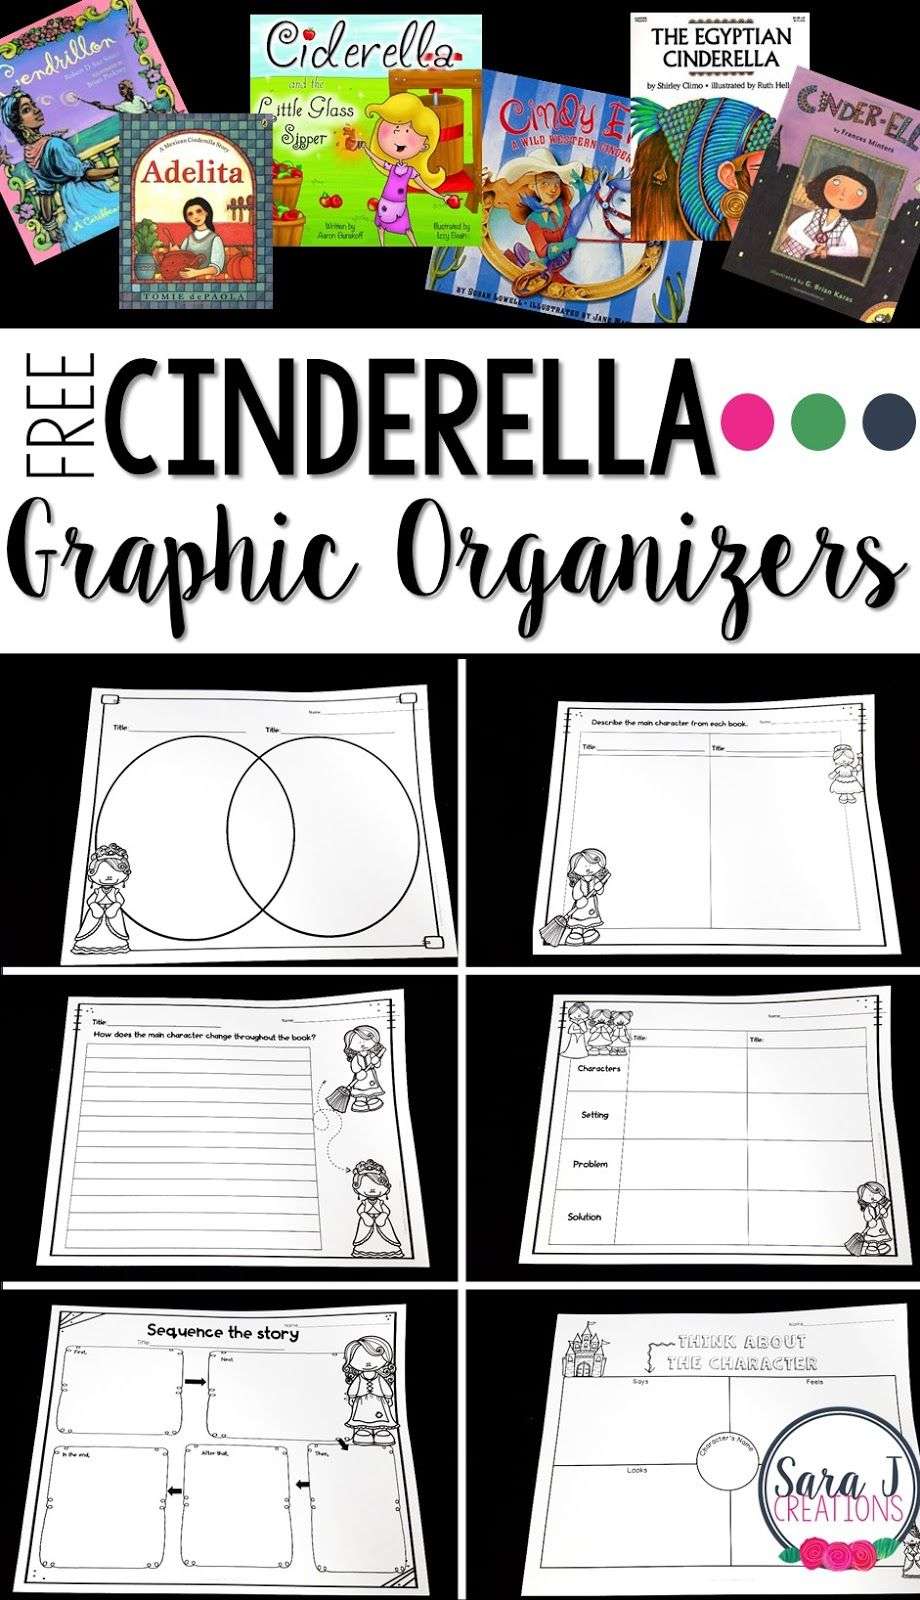 cendrillon venn diagram 4 wire to 5 trailer wiring free comparing cinderella graphic organizers fairy tales fables practice and contrasting different versions of the same story